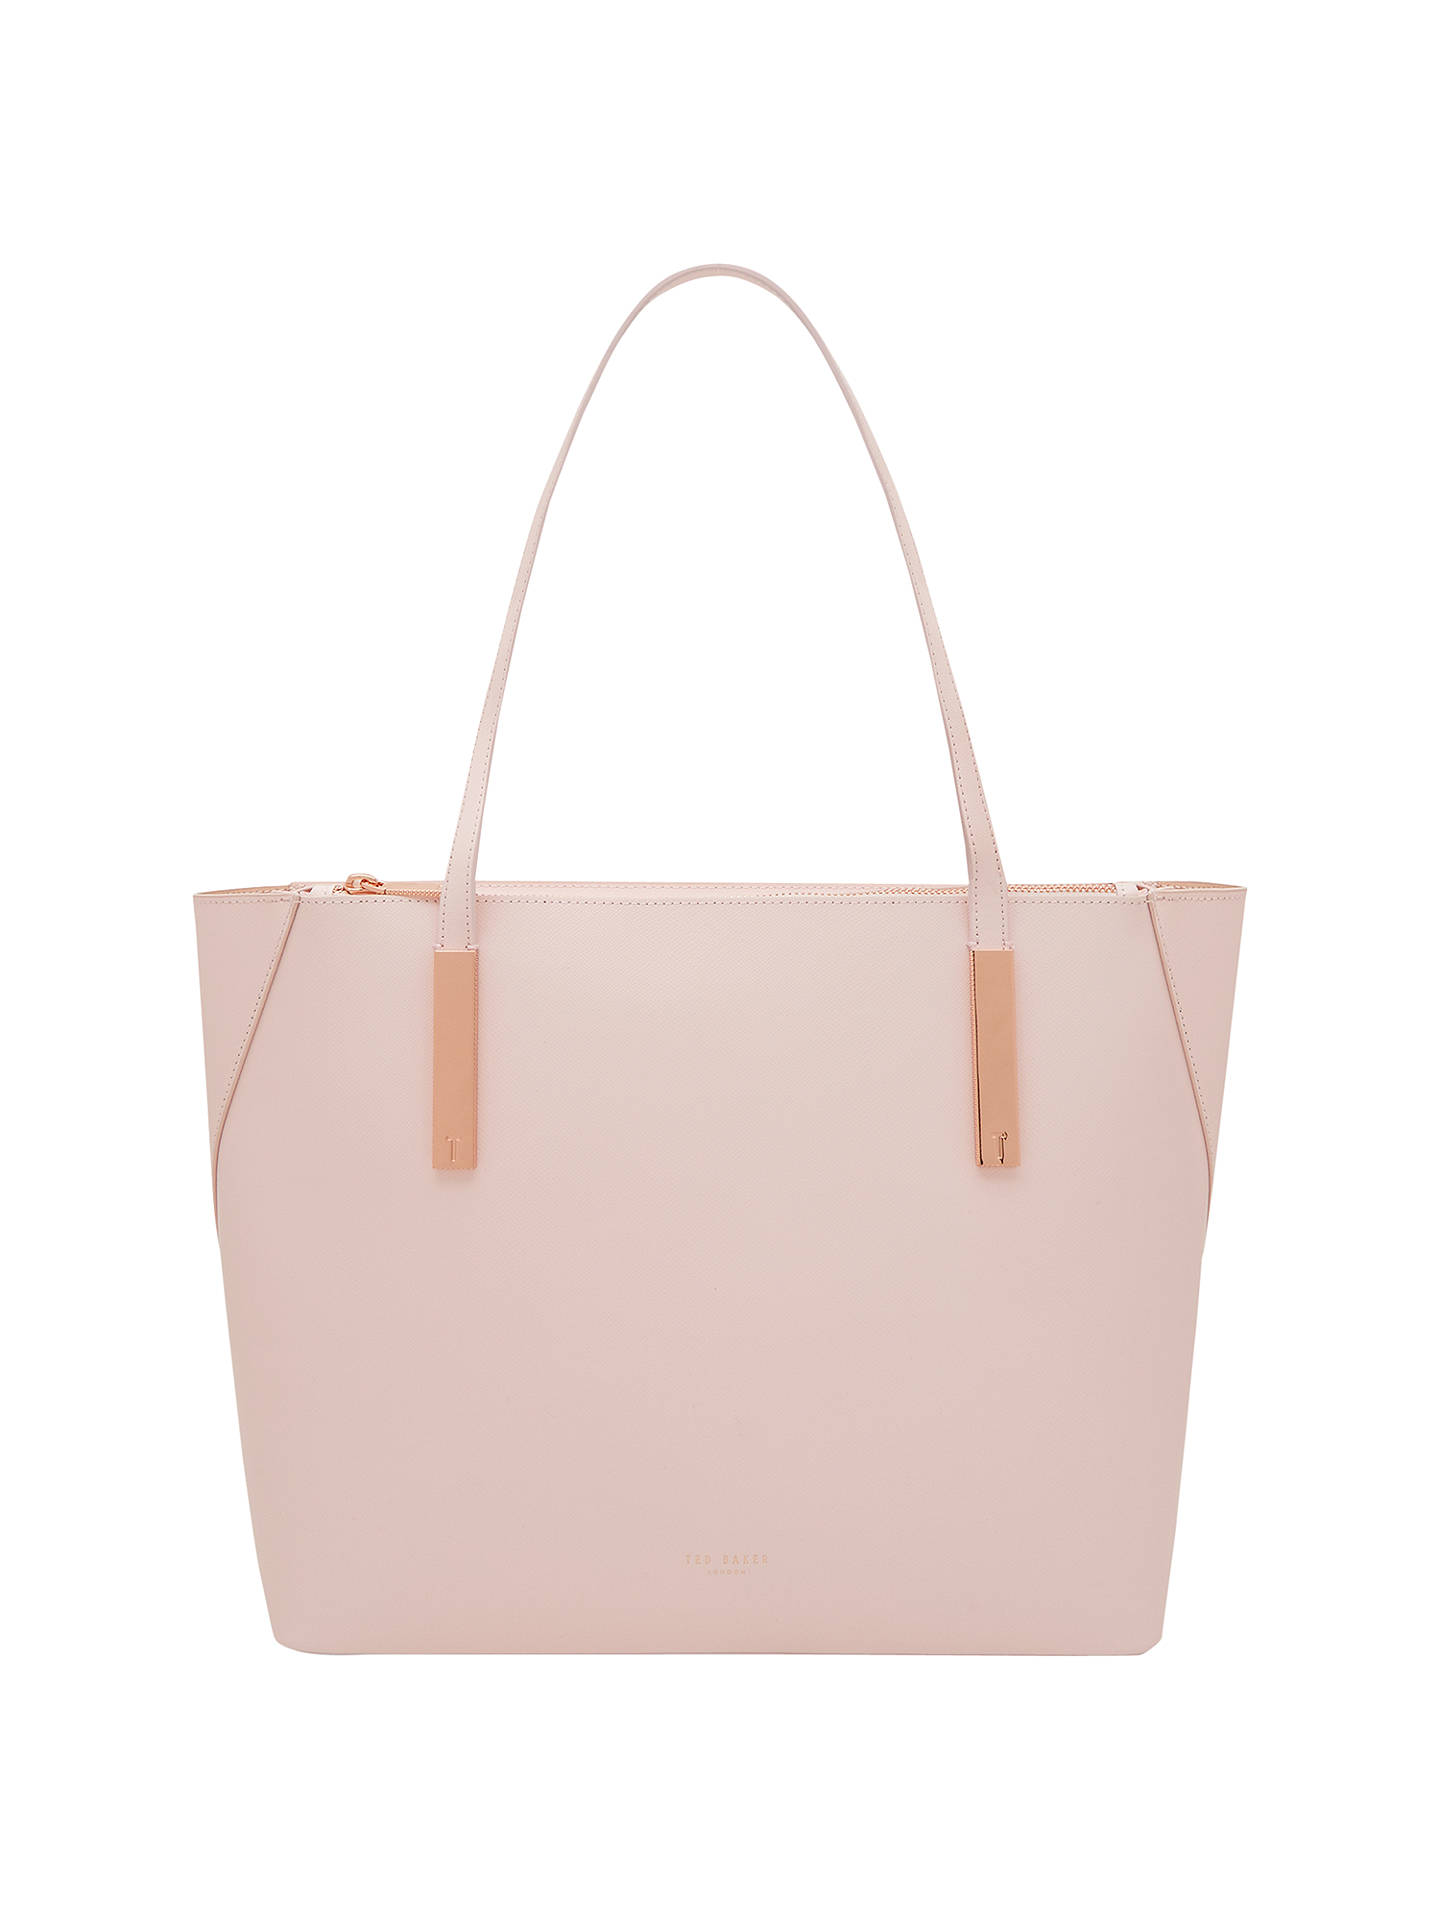 Ted Baker Poppey Leather Shopper Bag Baby Pink At John